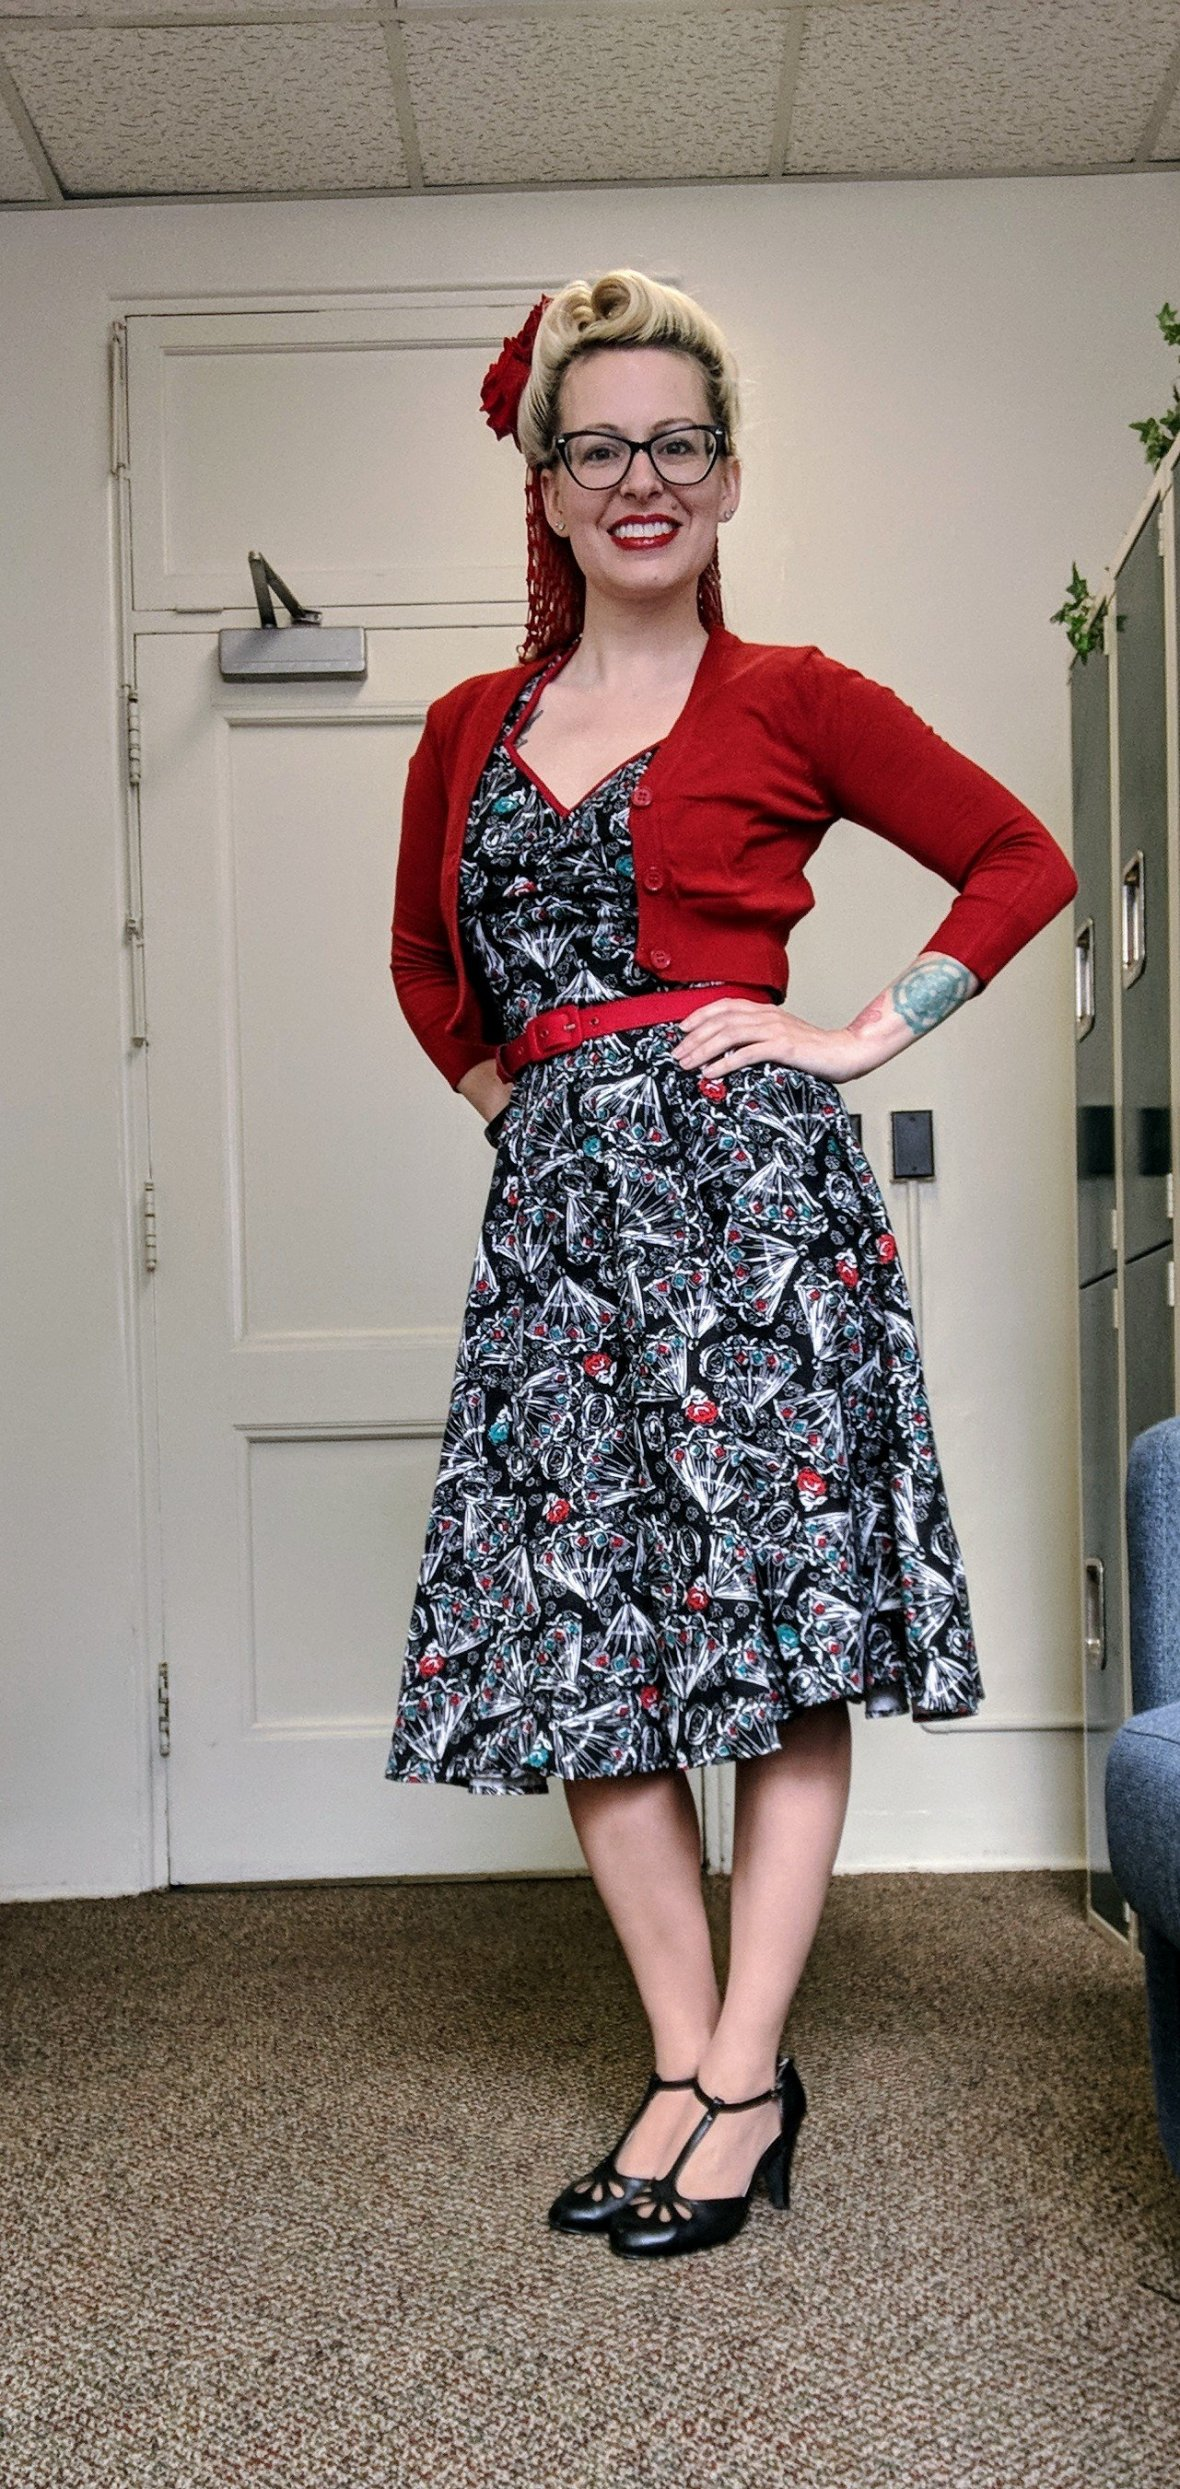 Spanish Fan Heidi Dress by Pinup Coutore for Pinup Girl Clothing